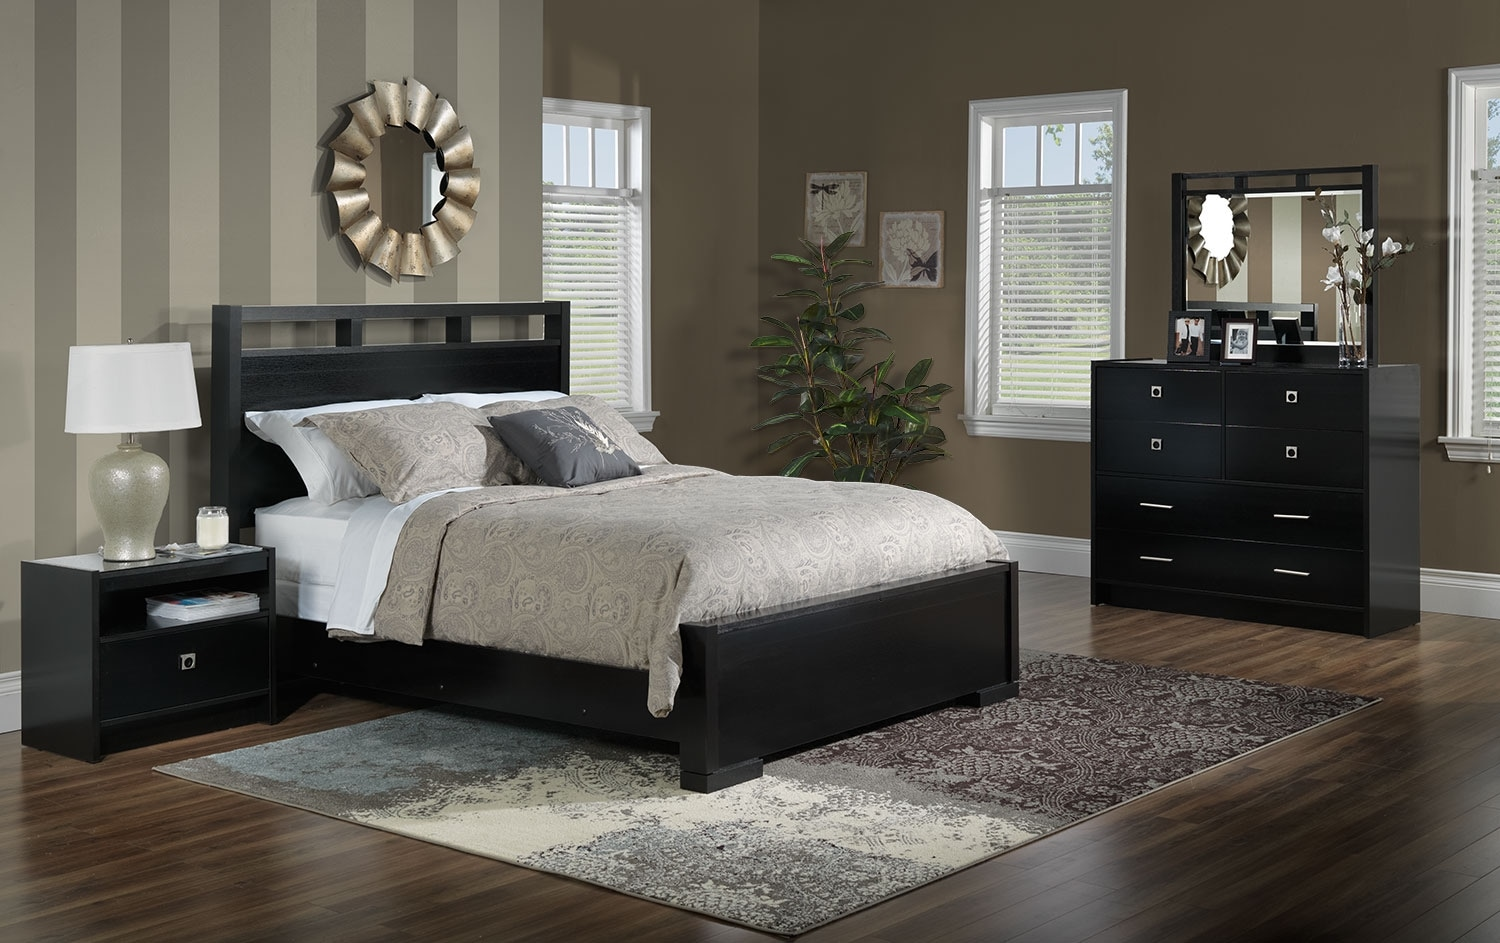 Altissa 5 Pc. Queen Bedroom Set